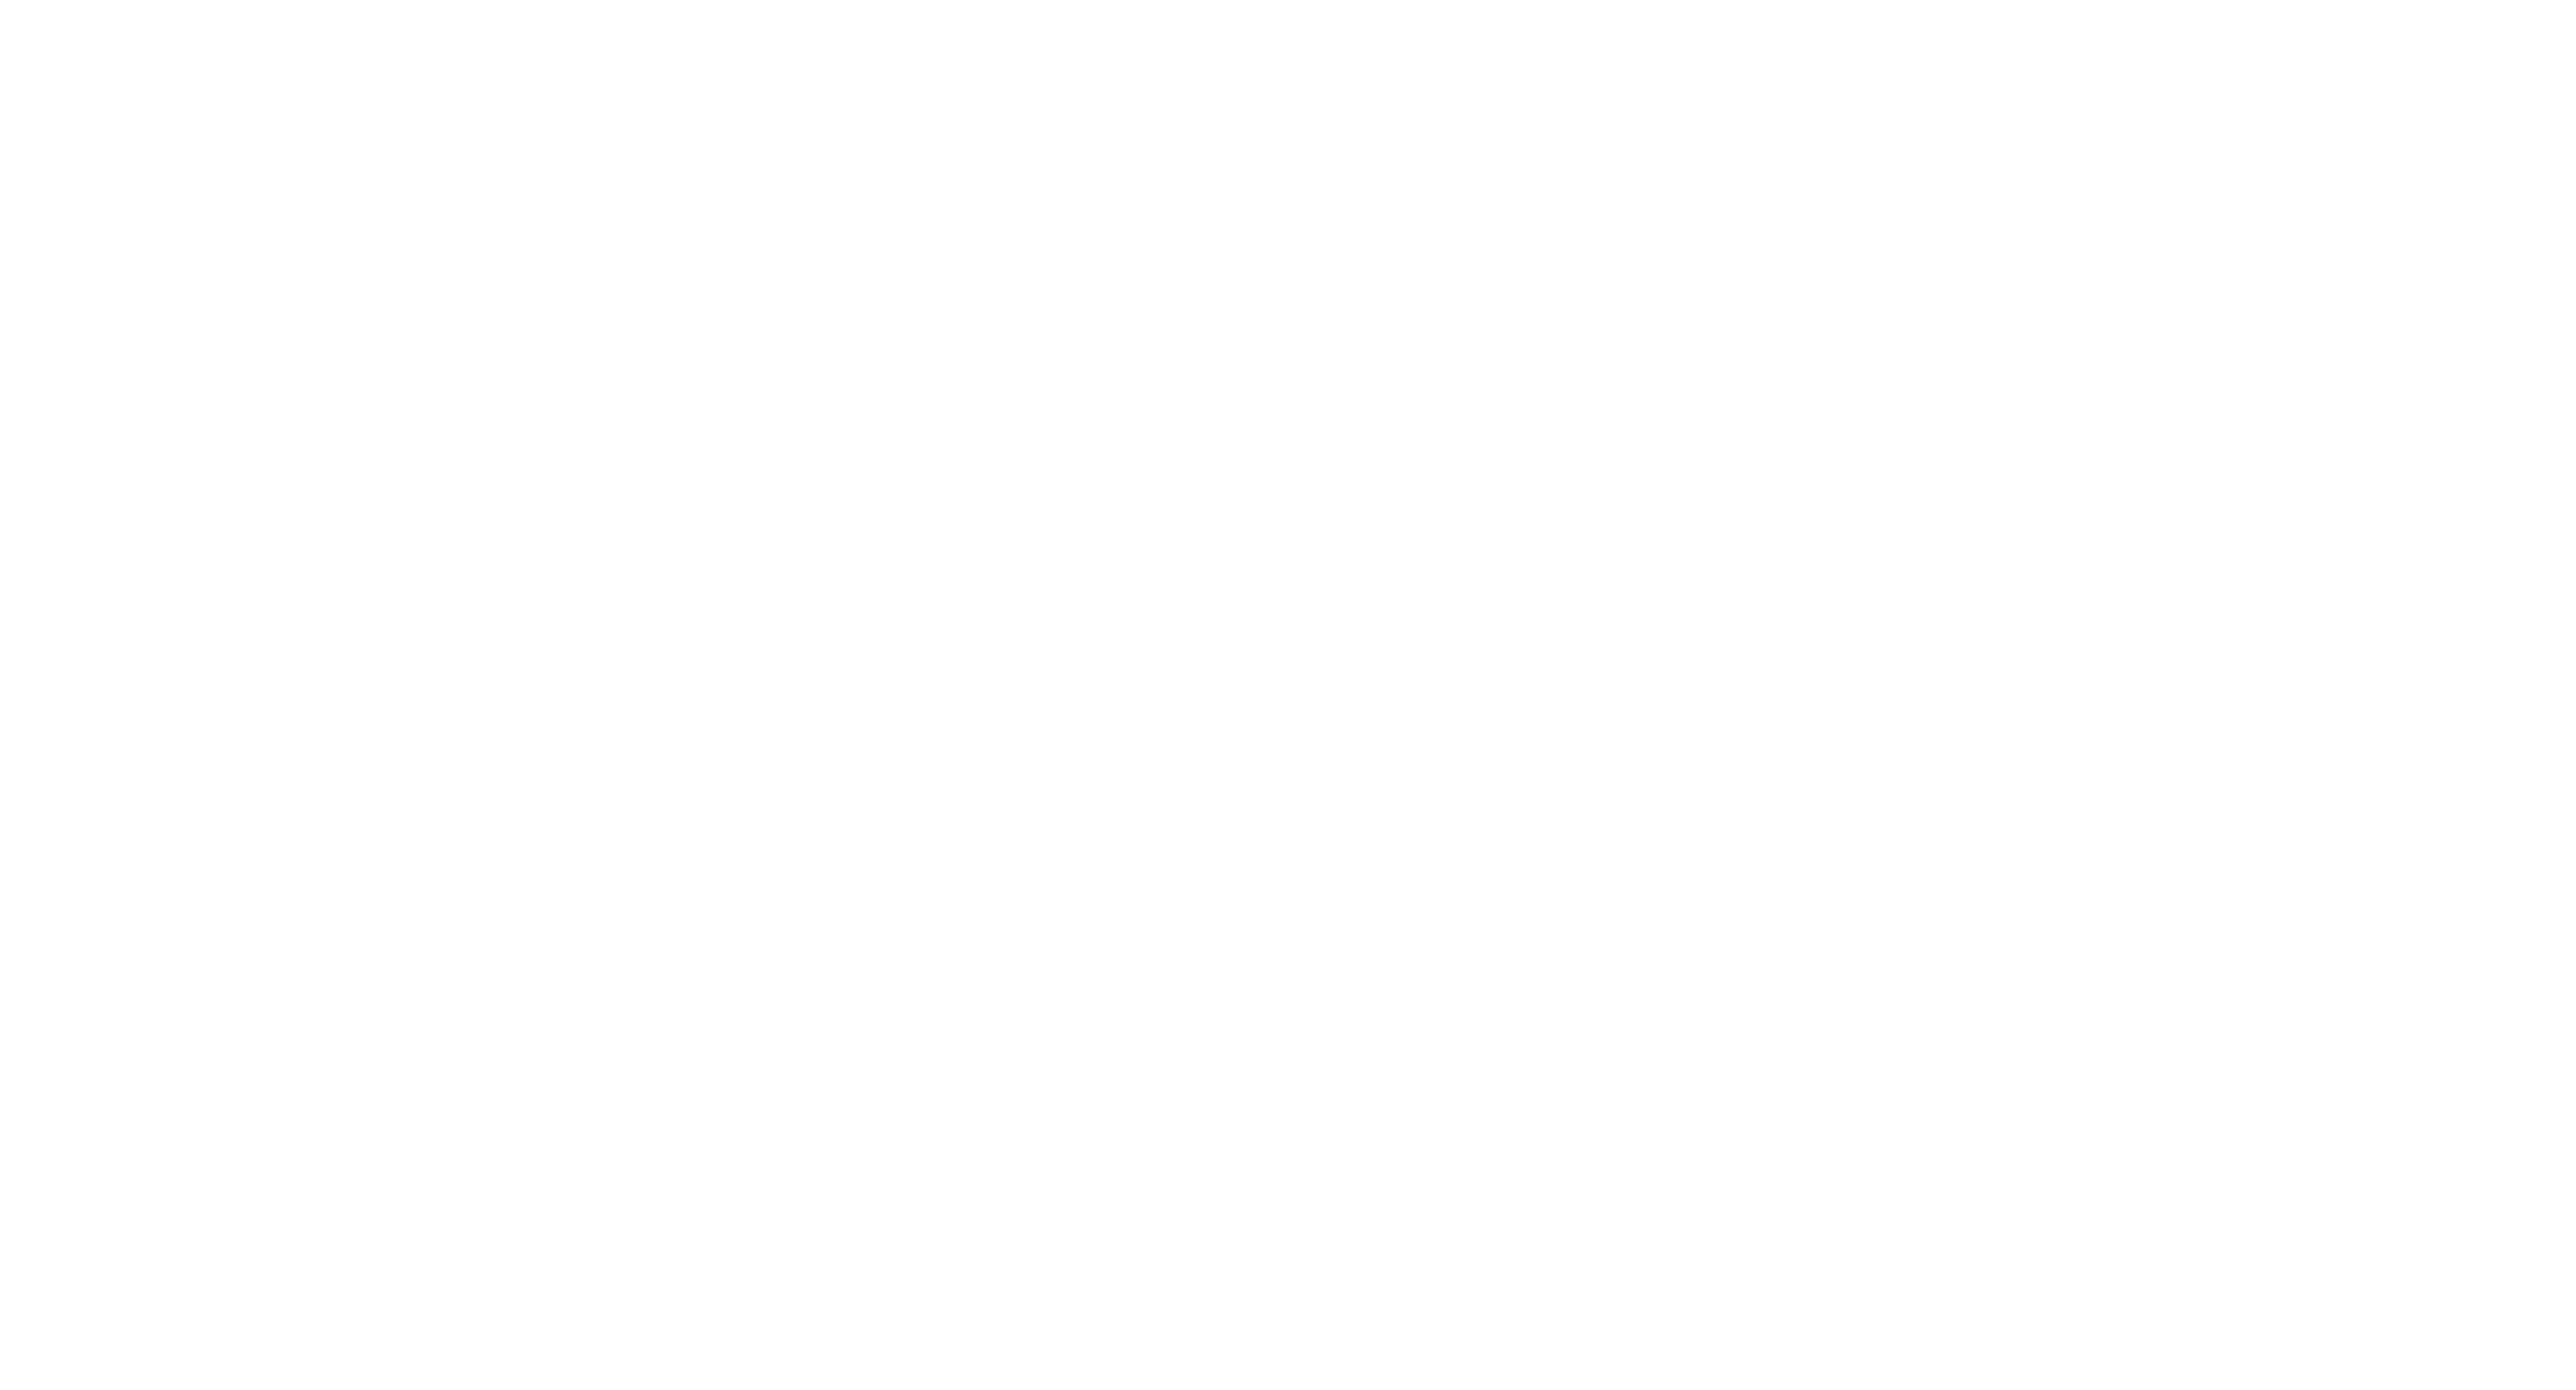 Western Counties Liberal Democrats